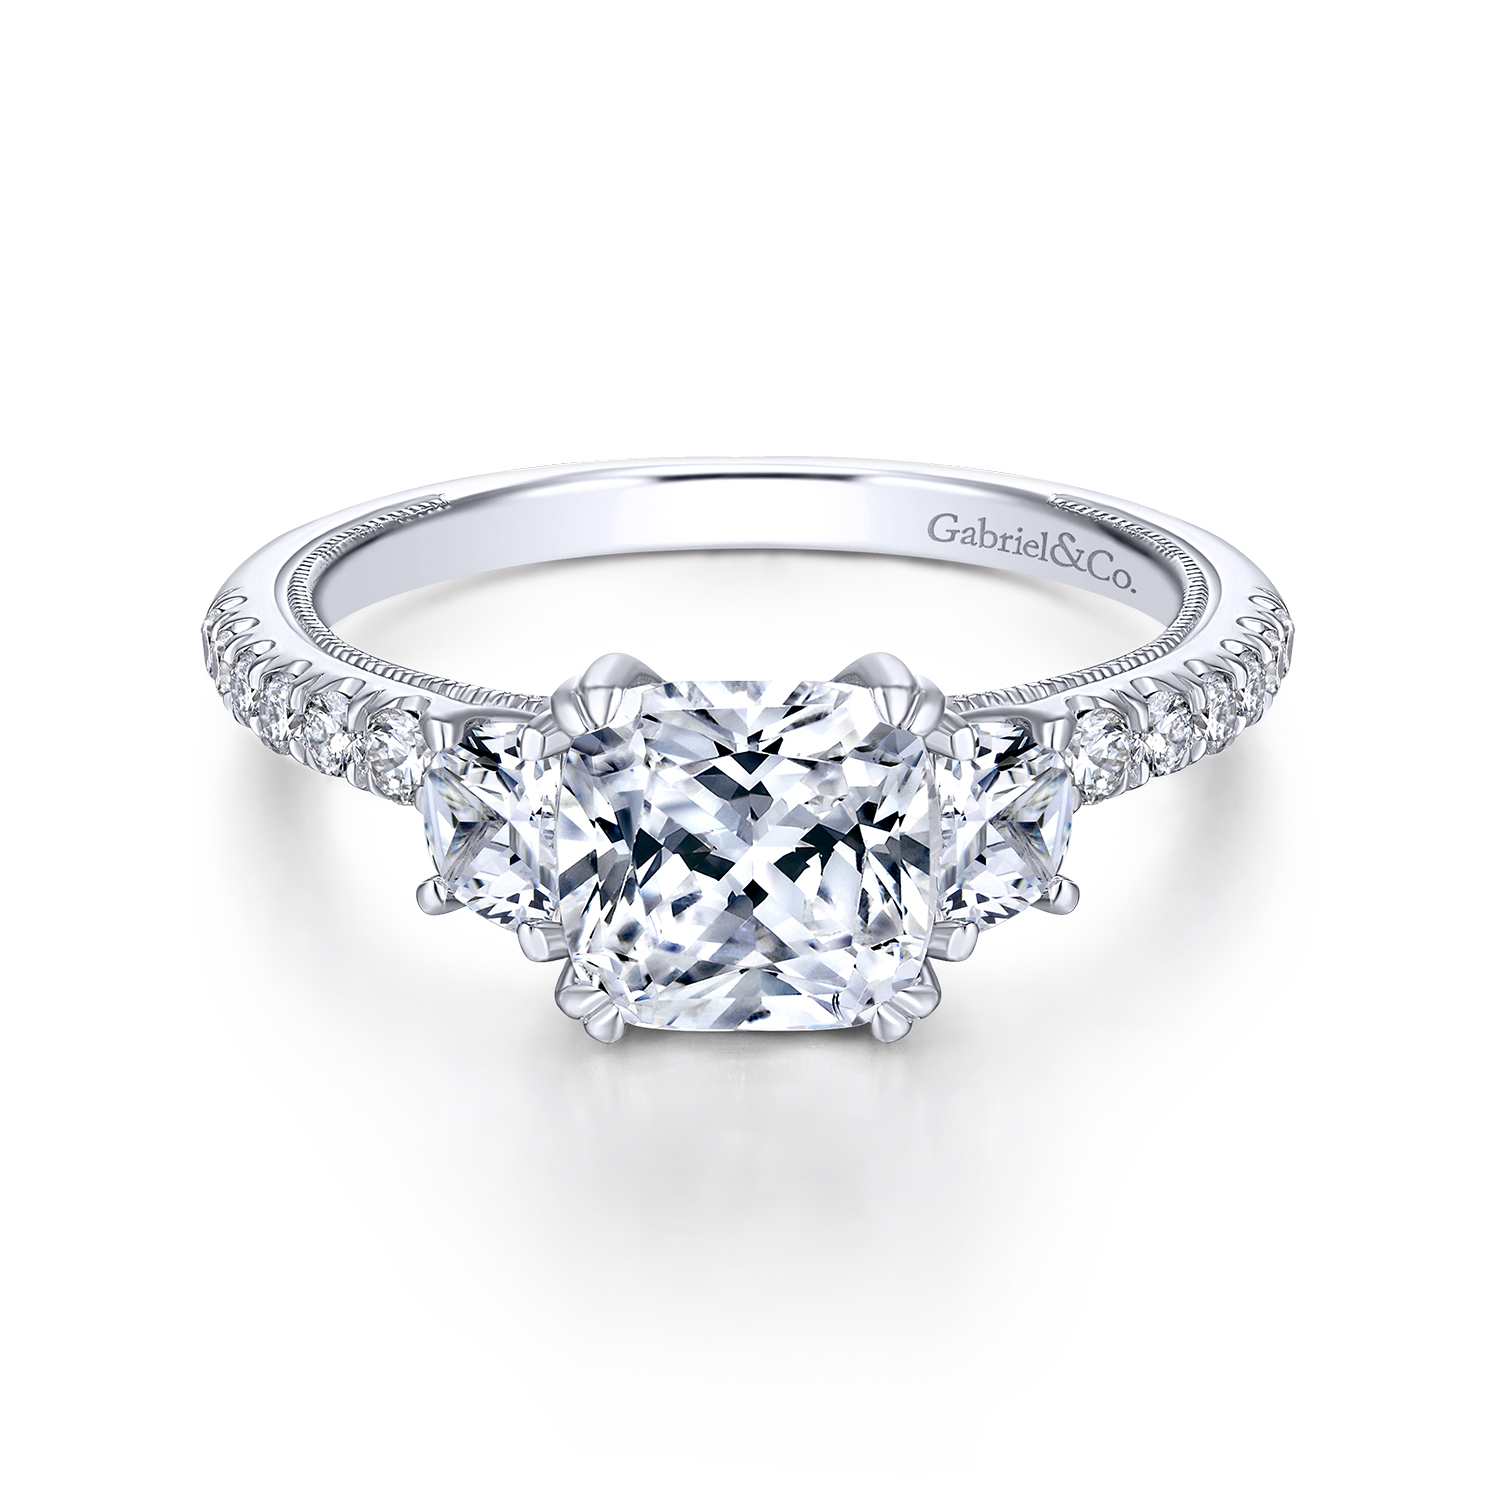 The What Who When Why How of Cushion Cut Diamond Engagement Rings